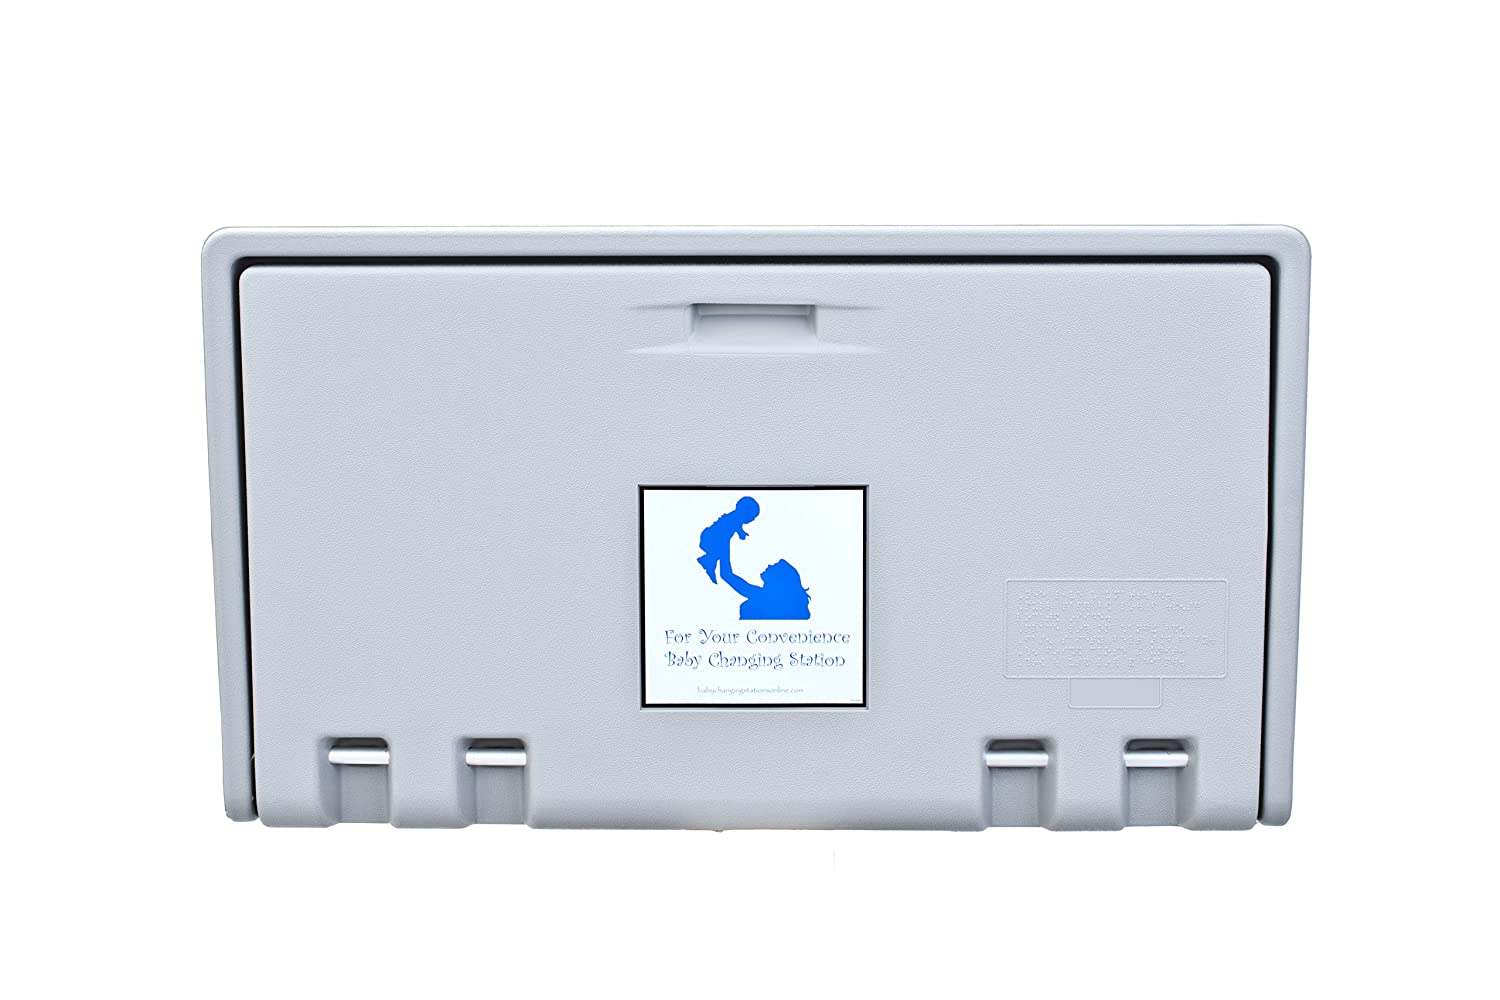 AHD100-01 Grey Horizontal Baby Changing Station